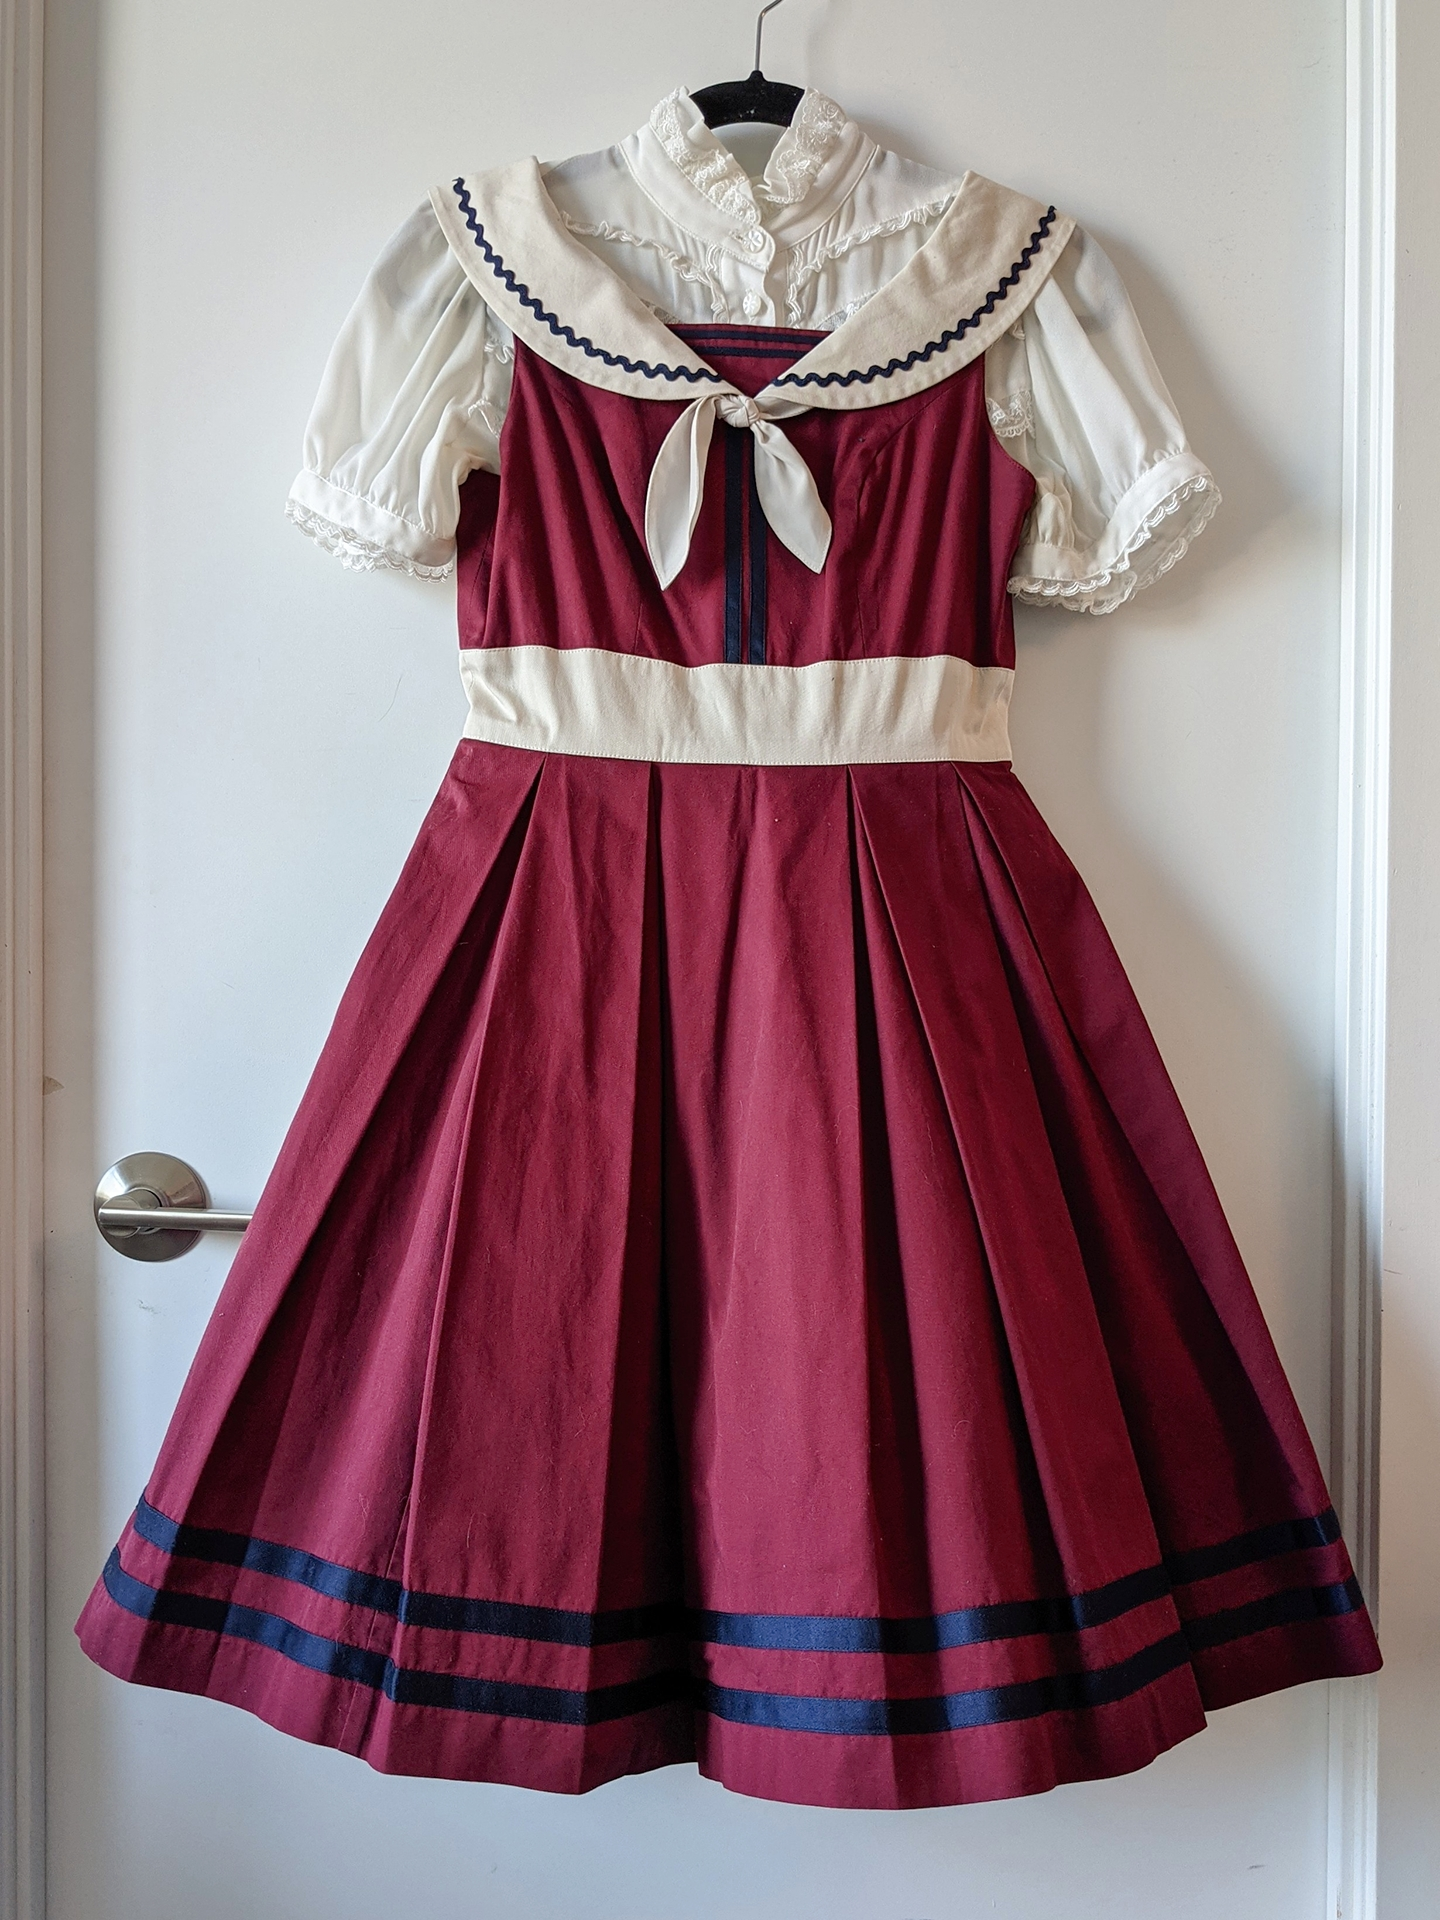 French Ribbon Marine by Victorian Maiden, blouse by Innocent World